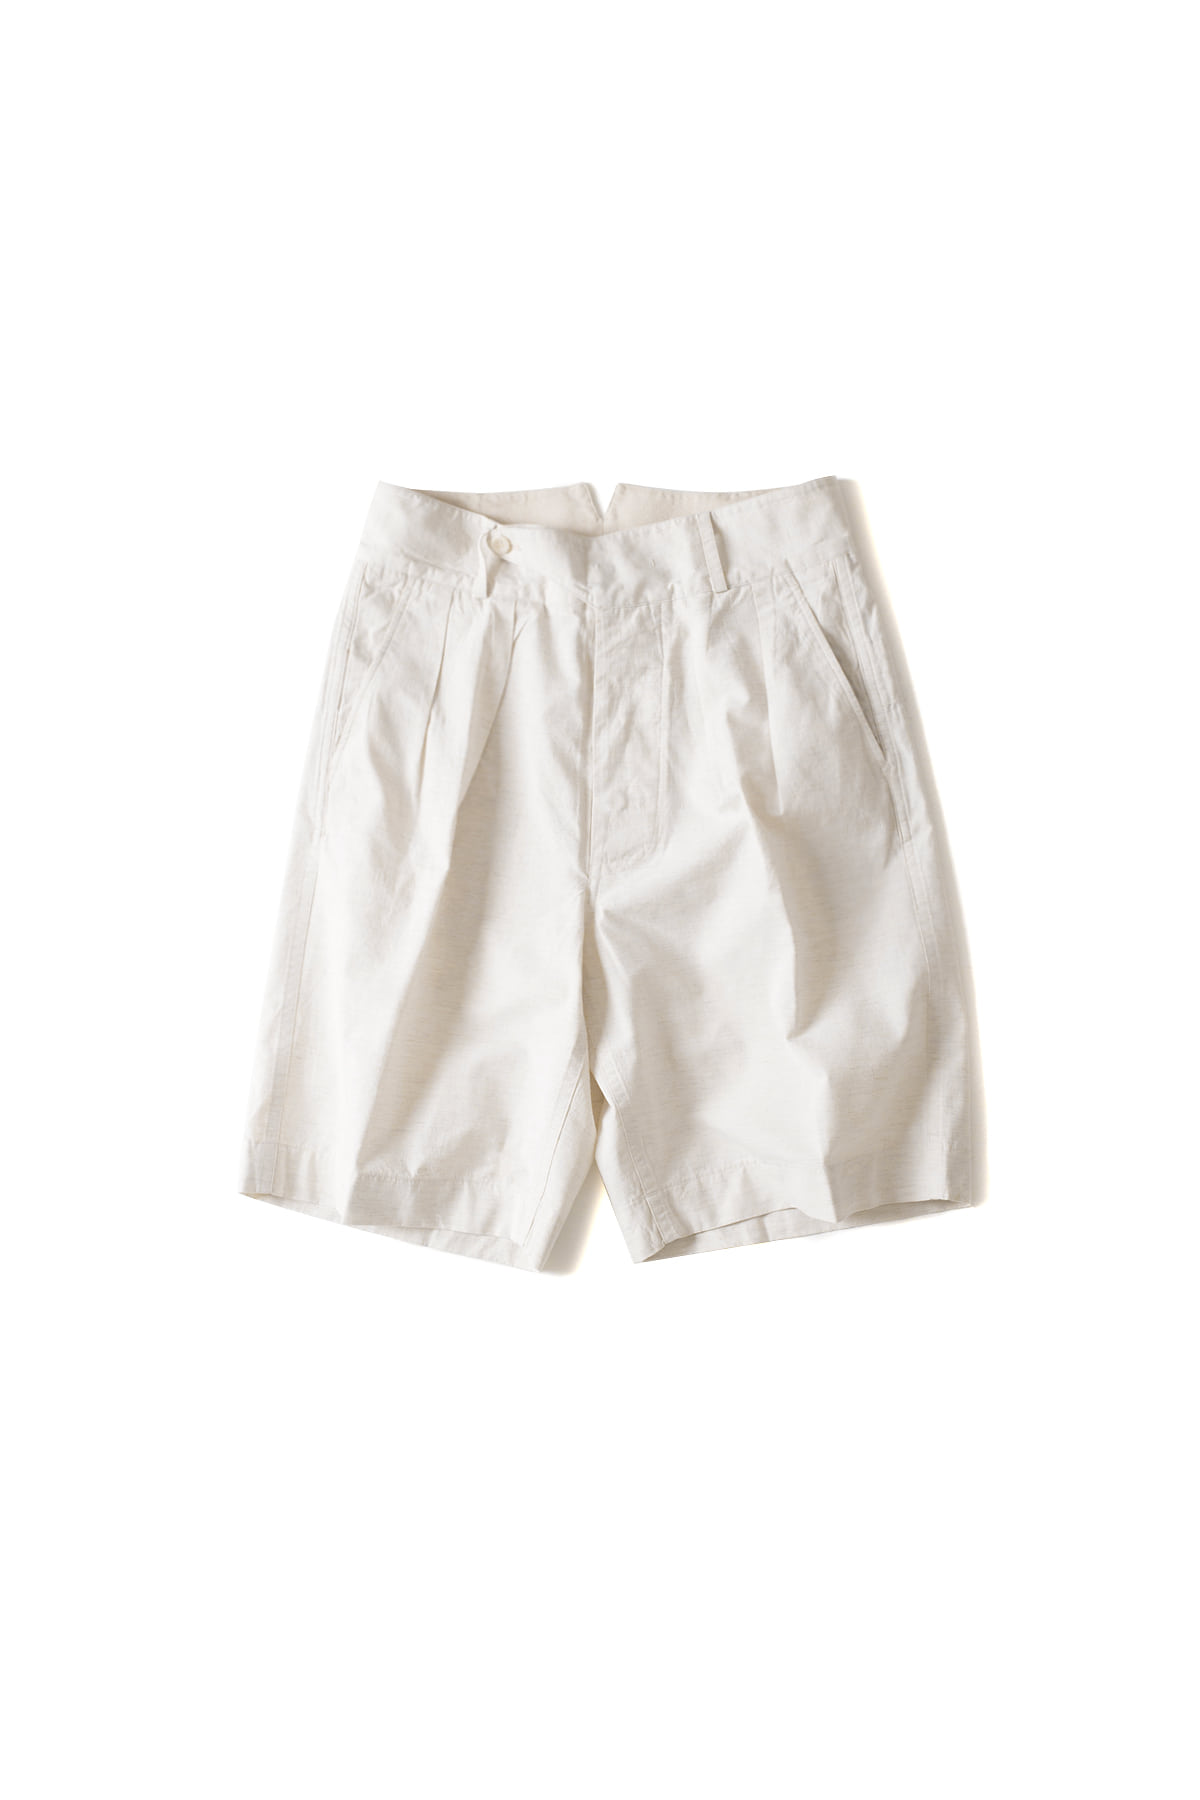 Document : Tucked Shorts (White)